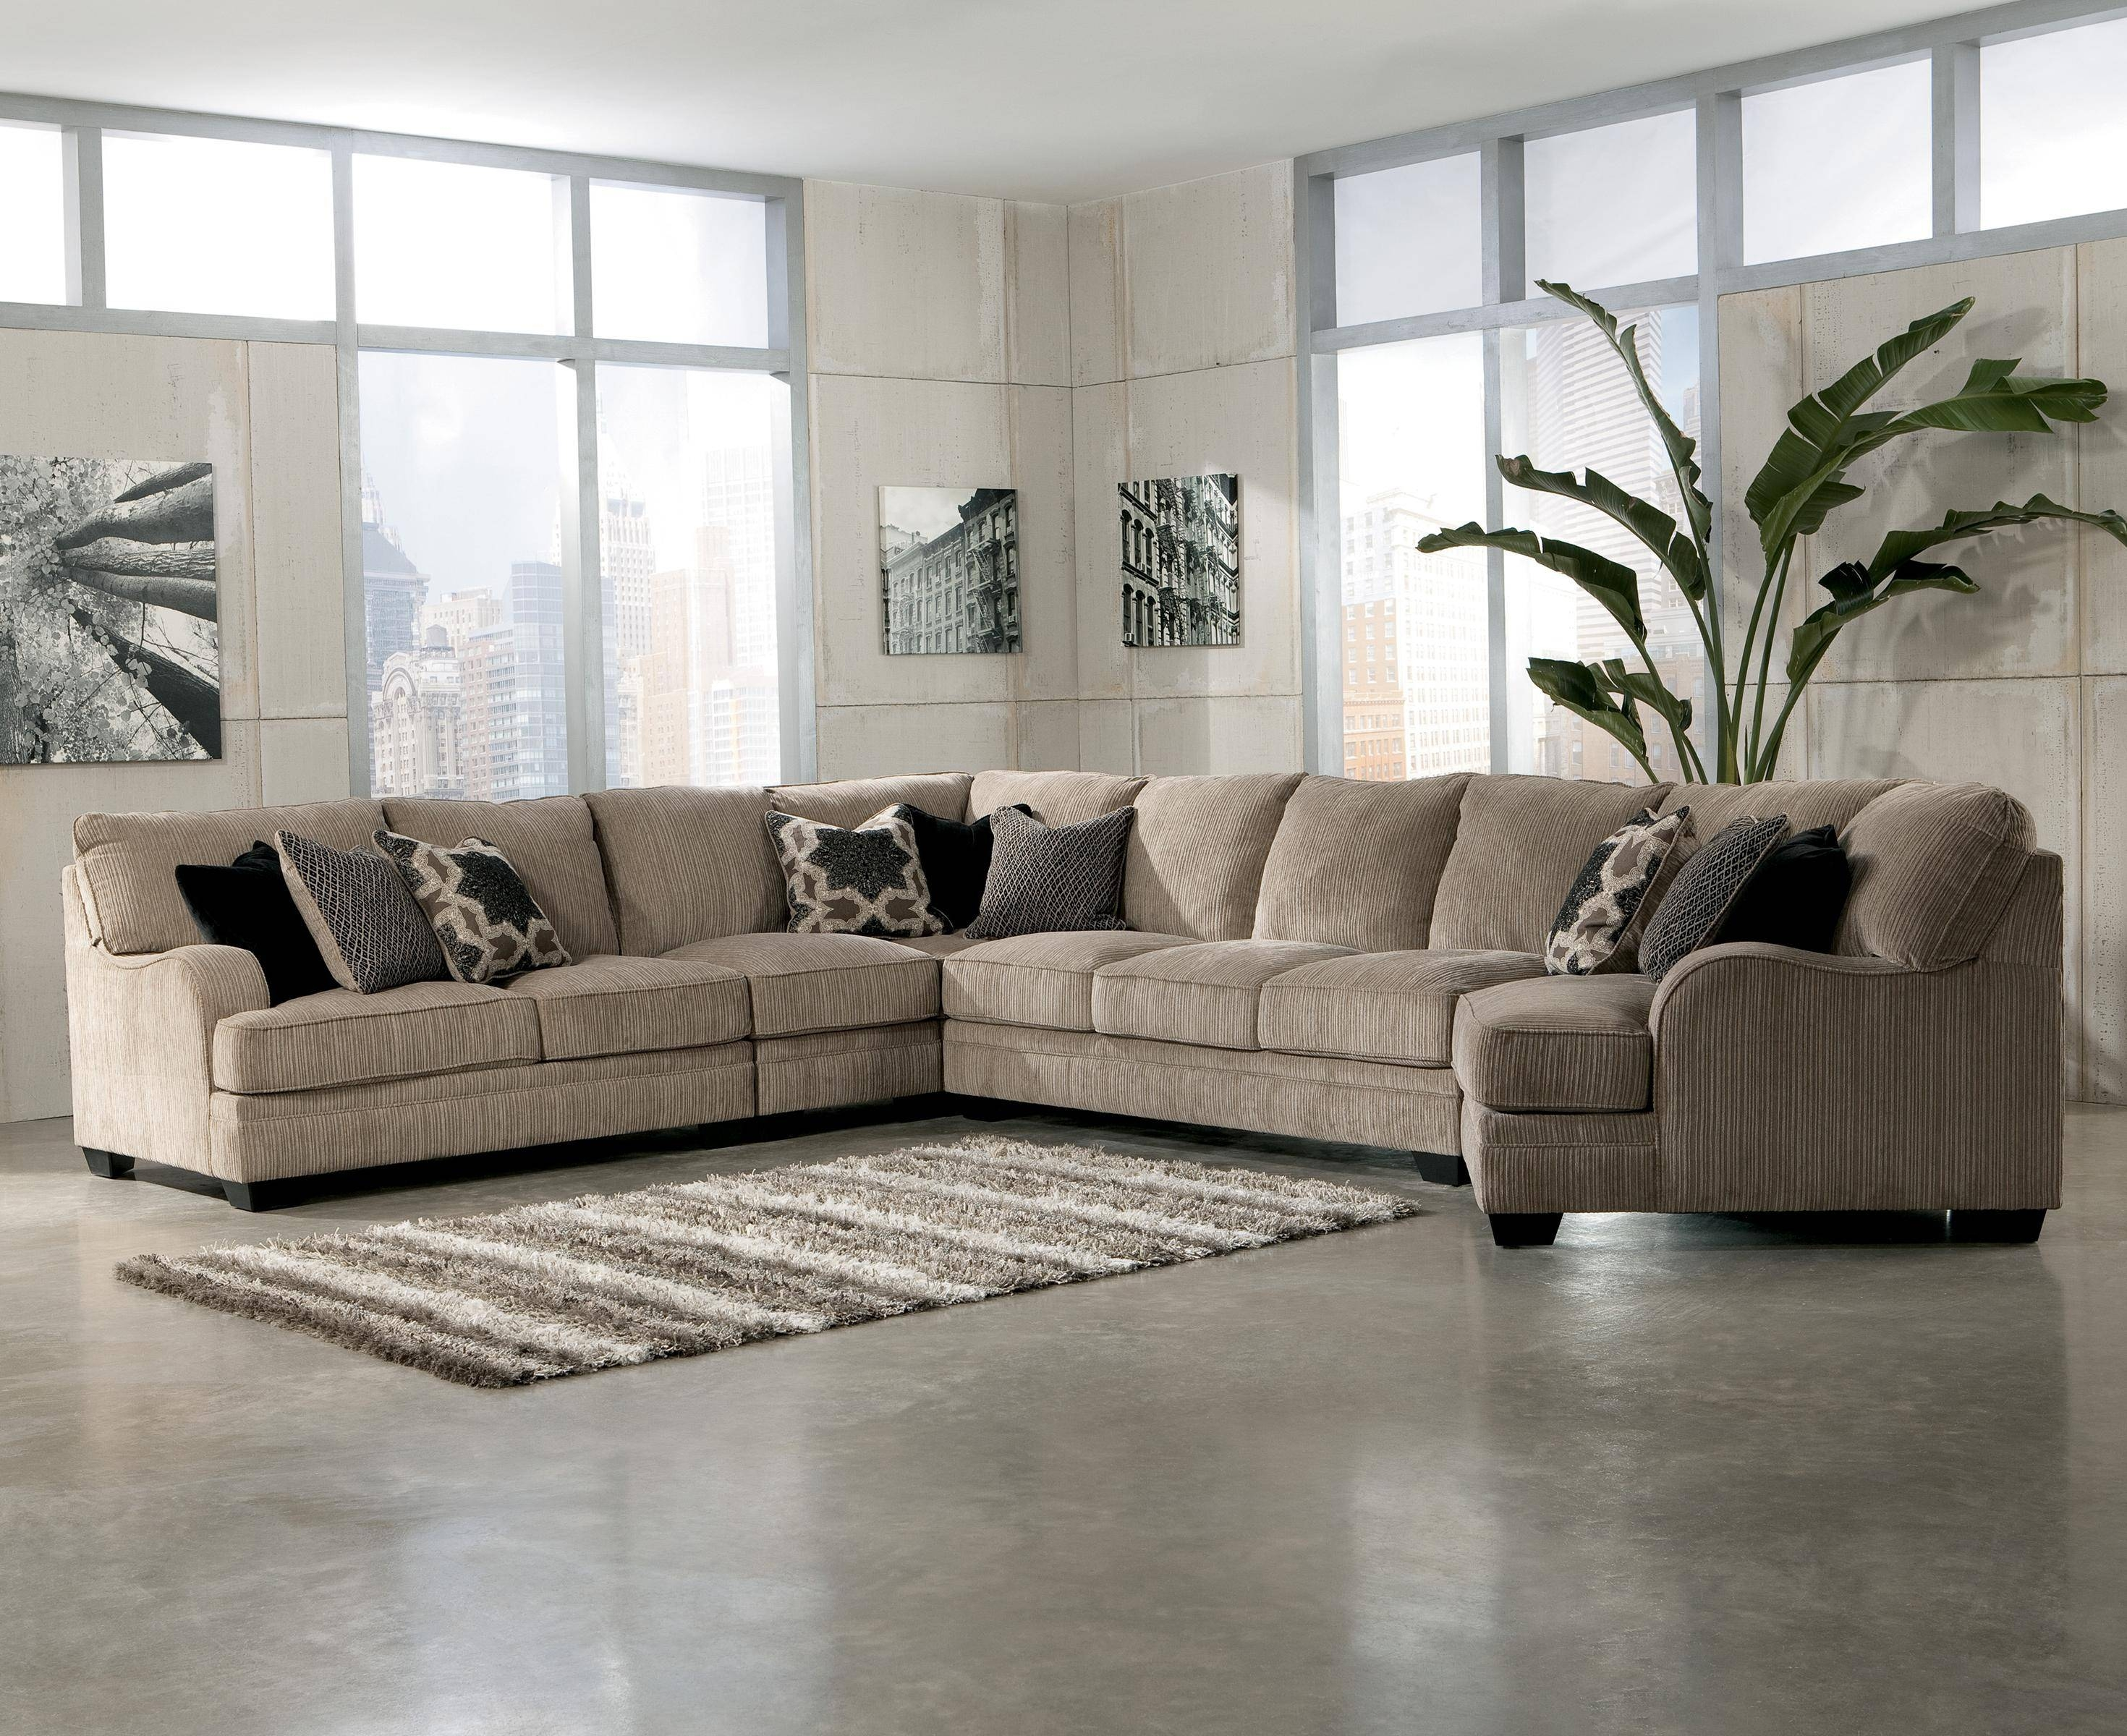 Signature Designashley Katisha - Platinum 5-Piece Sectional in Signature Design Sectional Sofas (Image 15 of 15)